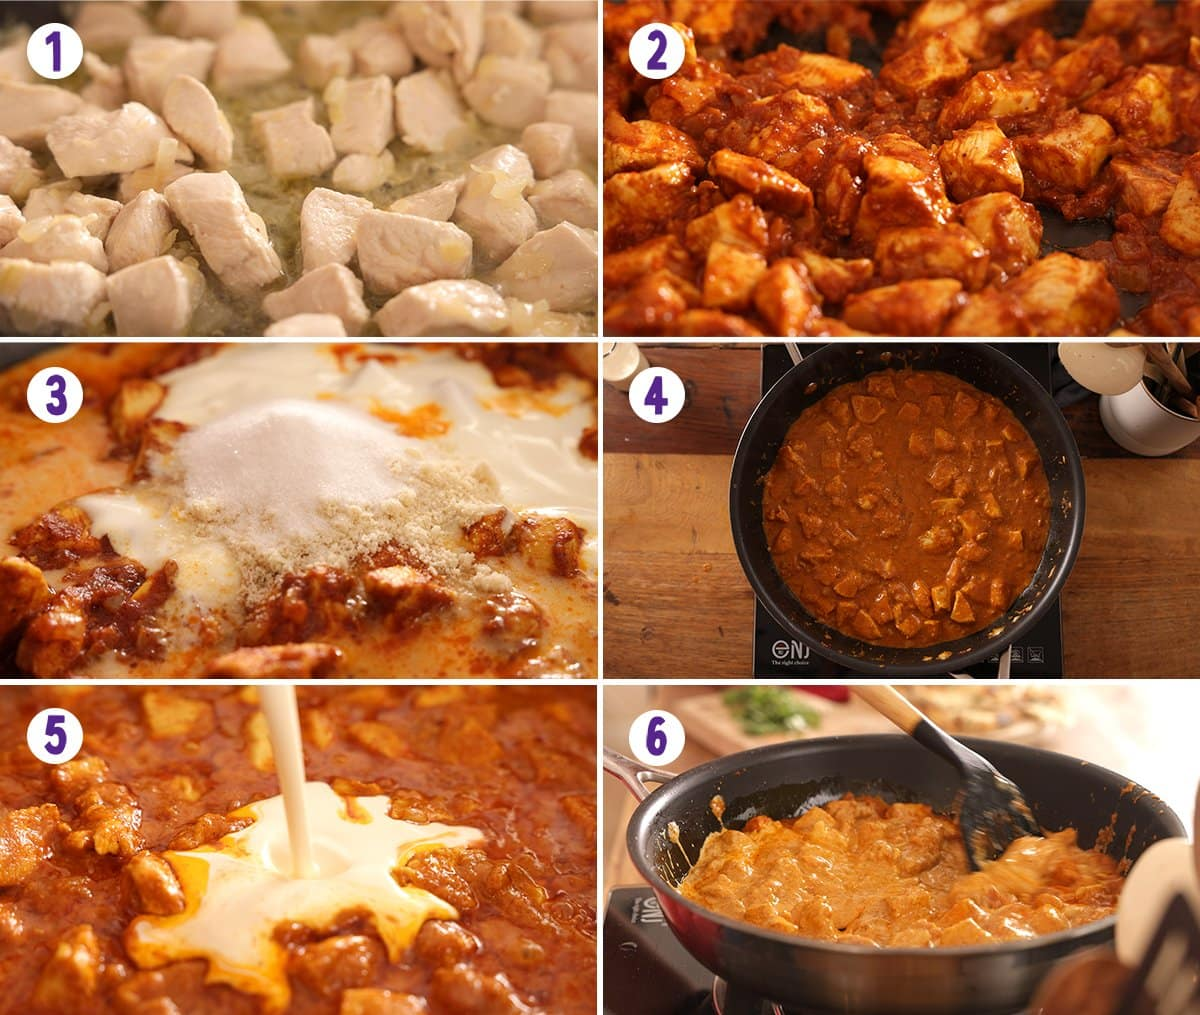 6 image collage showing how to make chicken korma